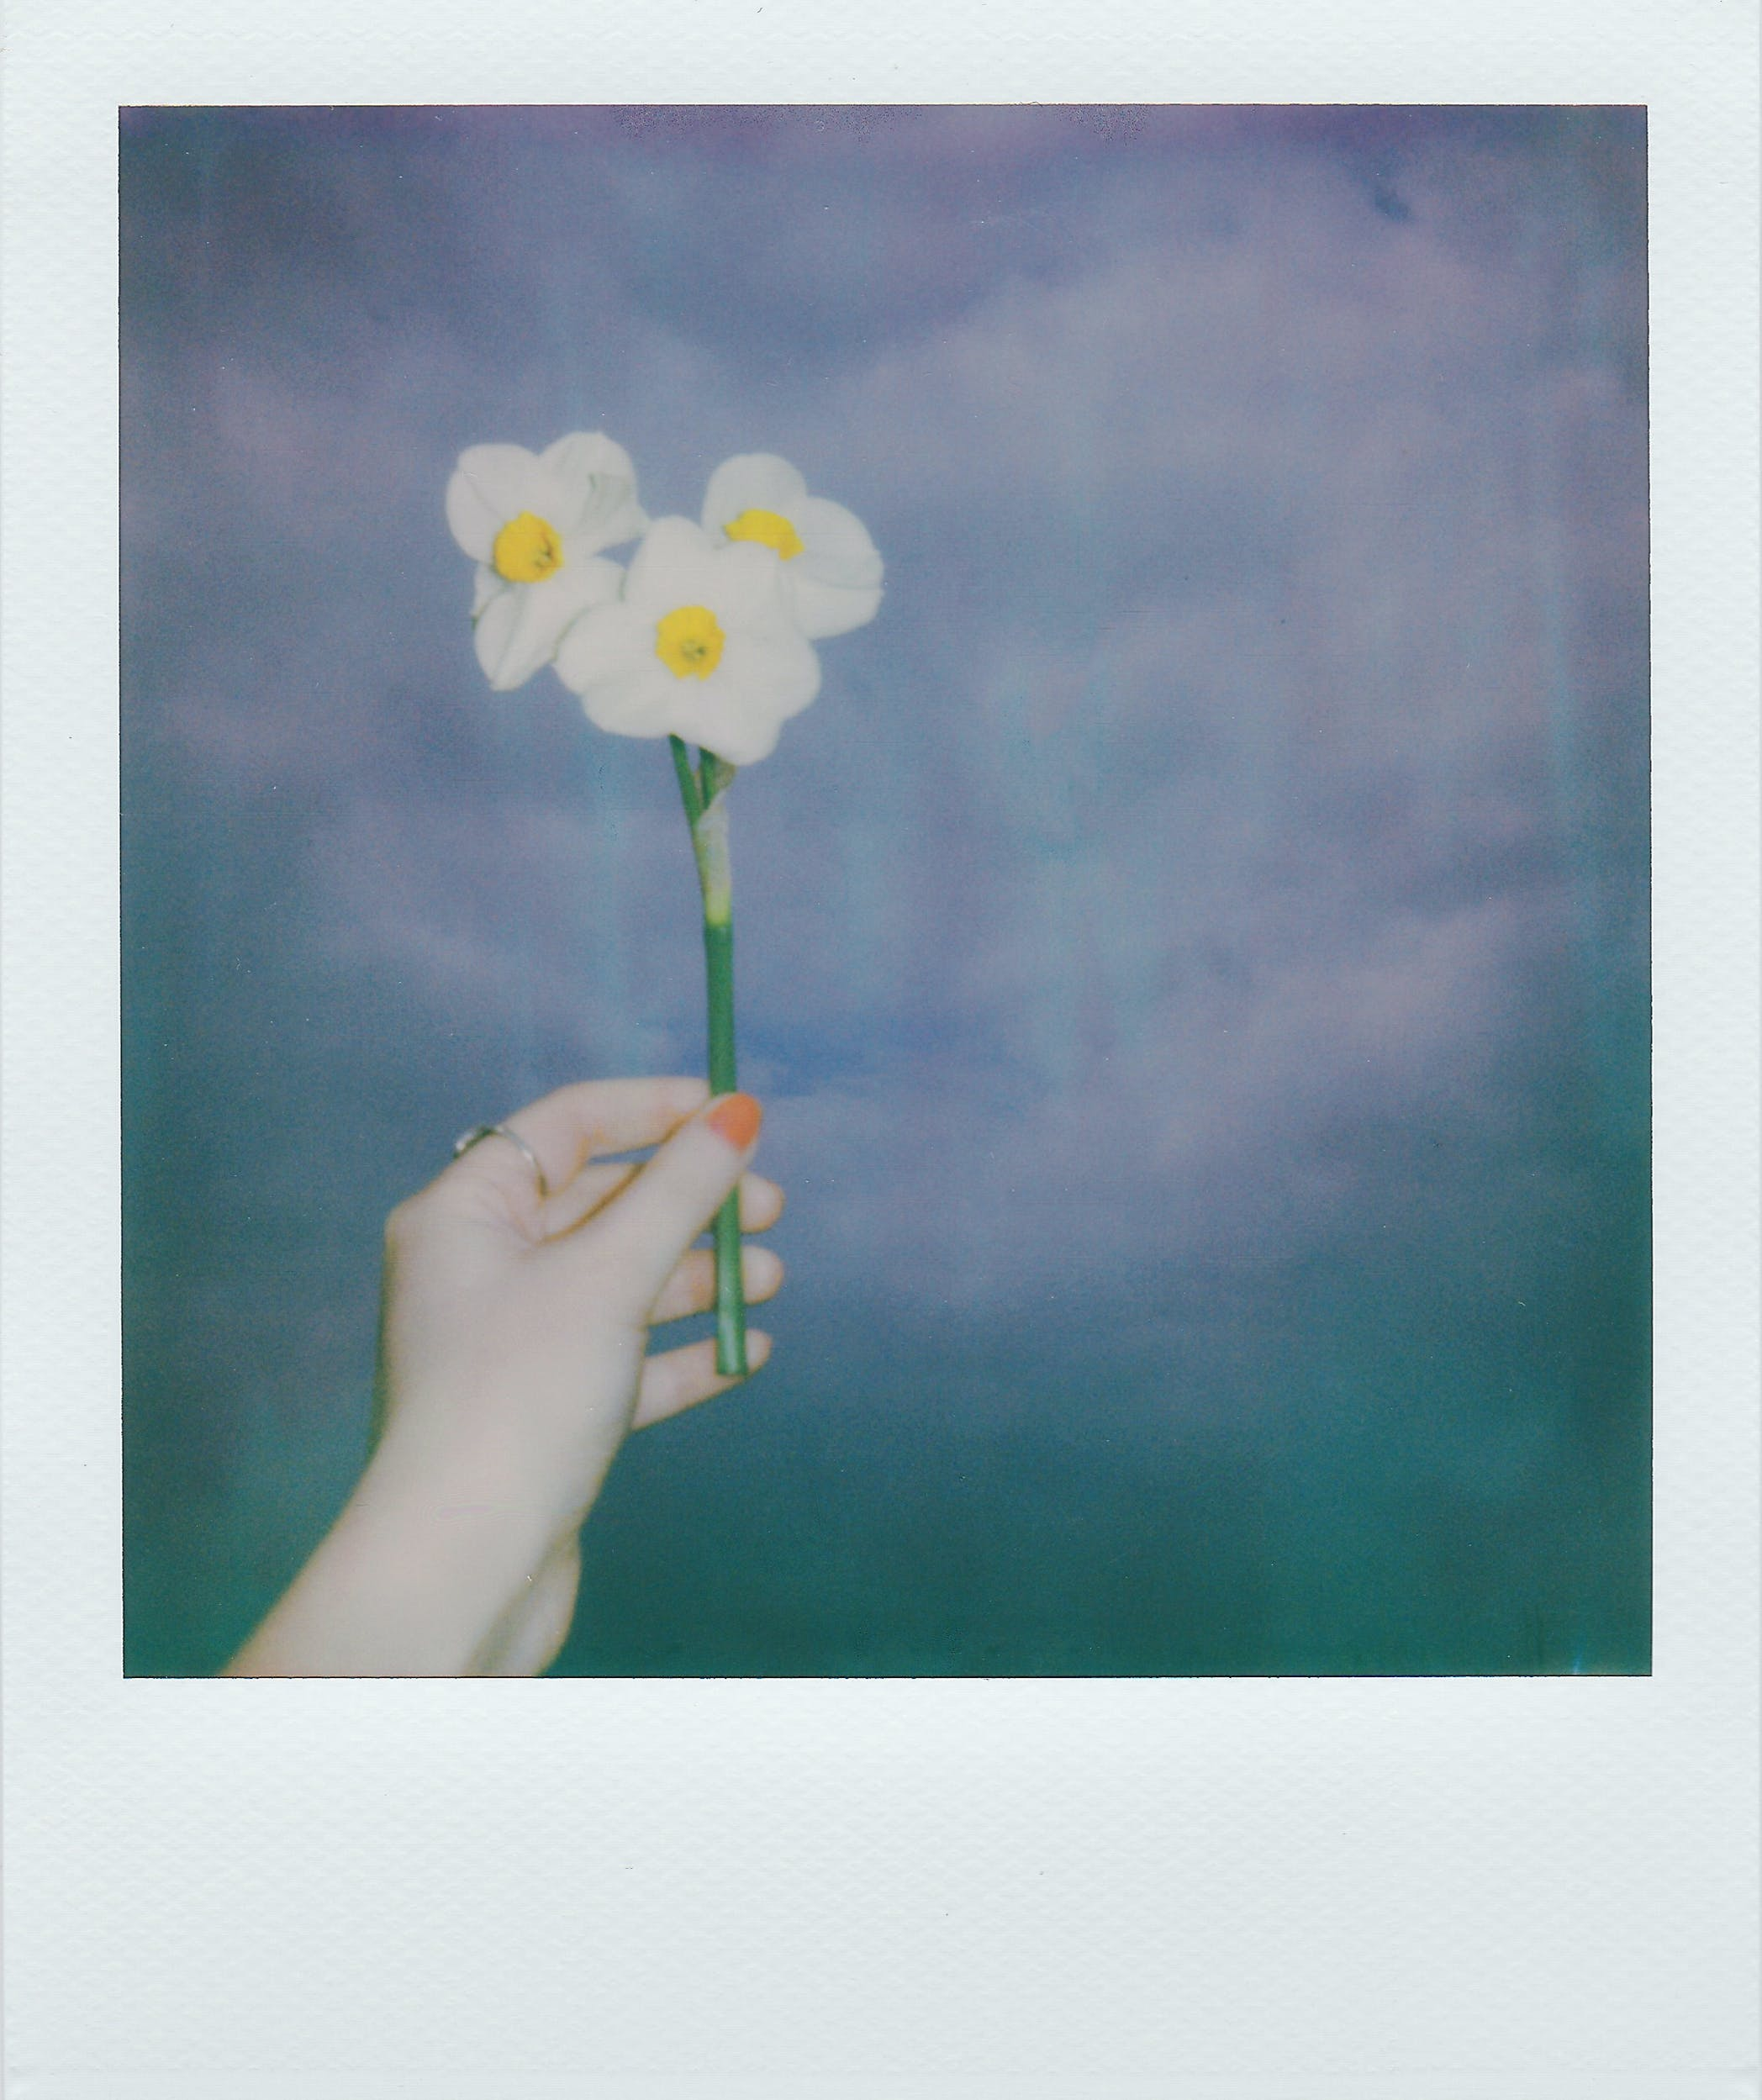 Person's Left Hand Holding Three White-petaled Flowers